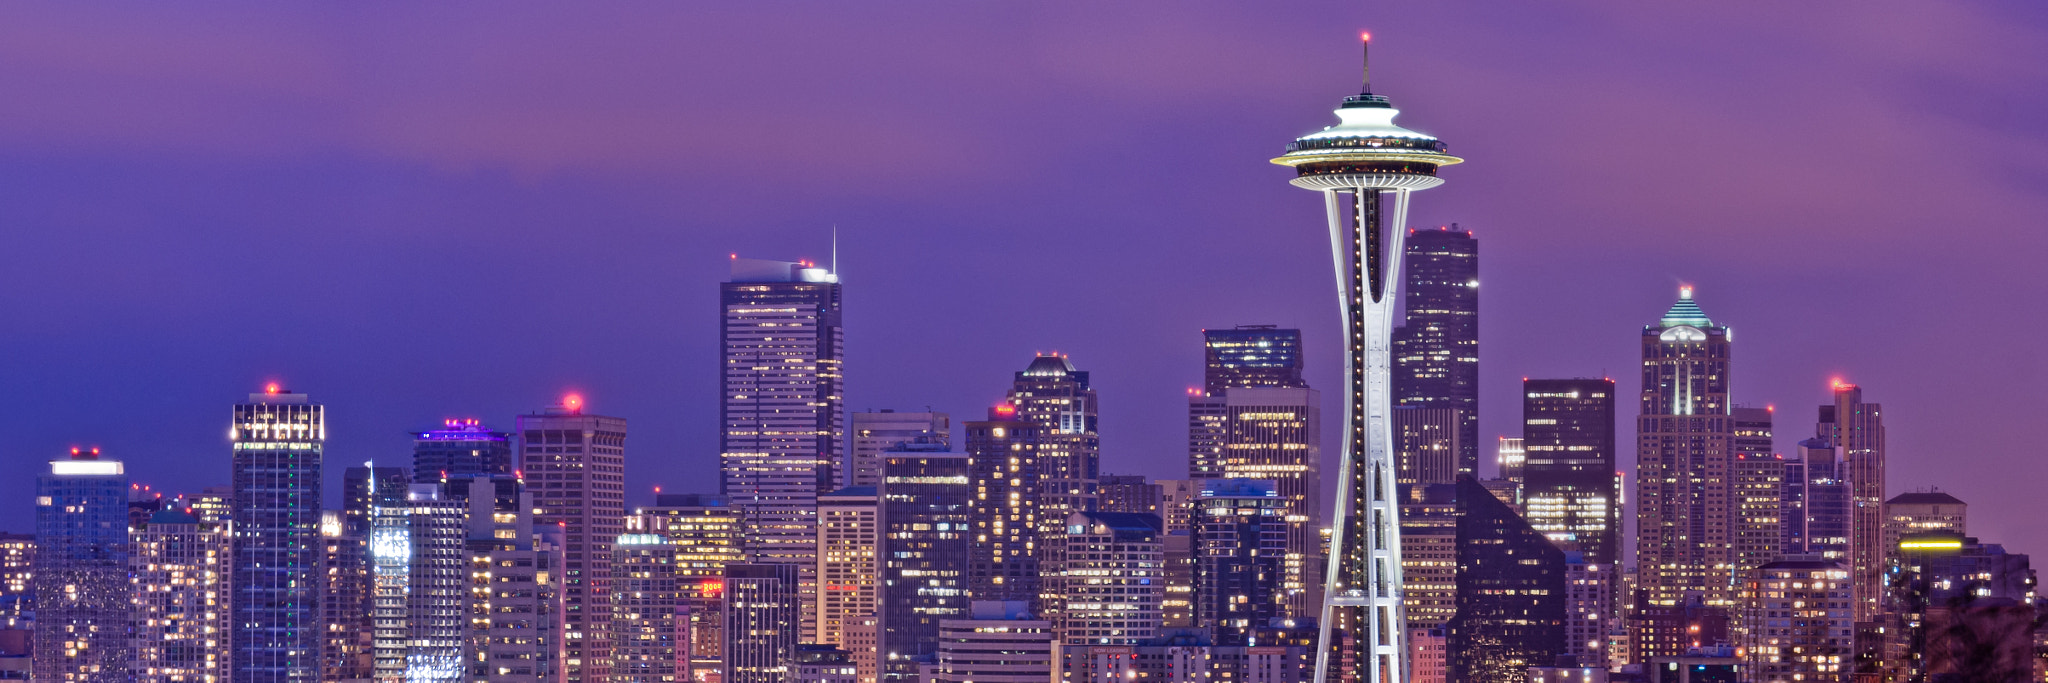 Photograph Seattle Skyline by Dominic Walter on 500px